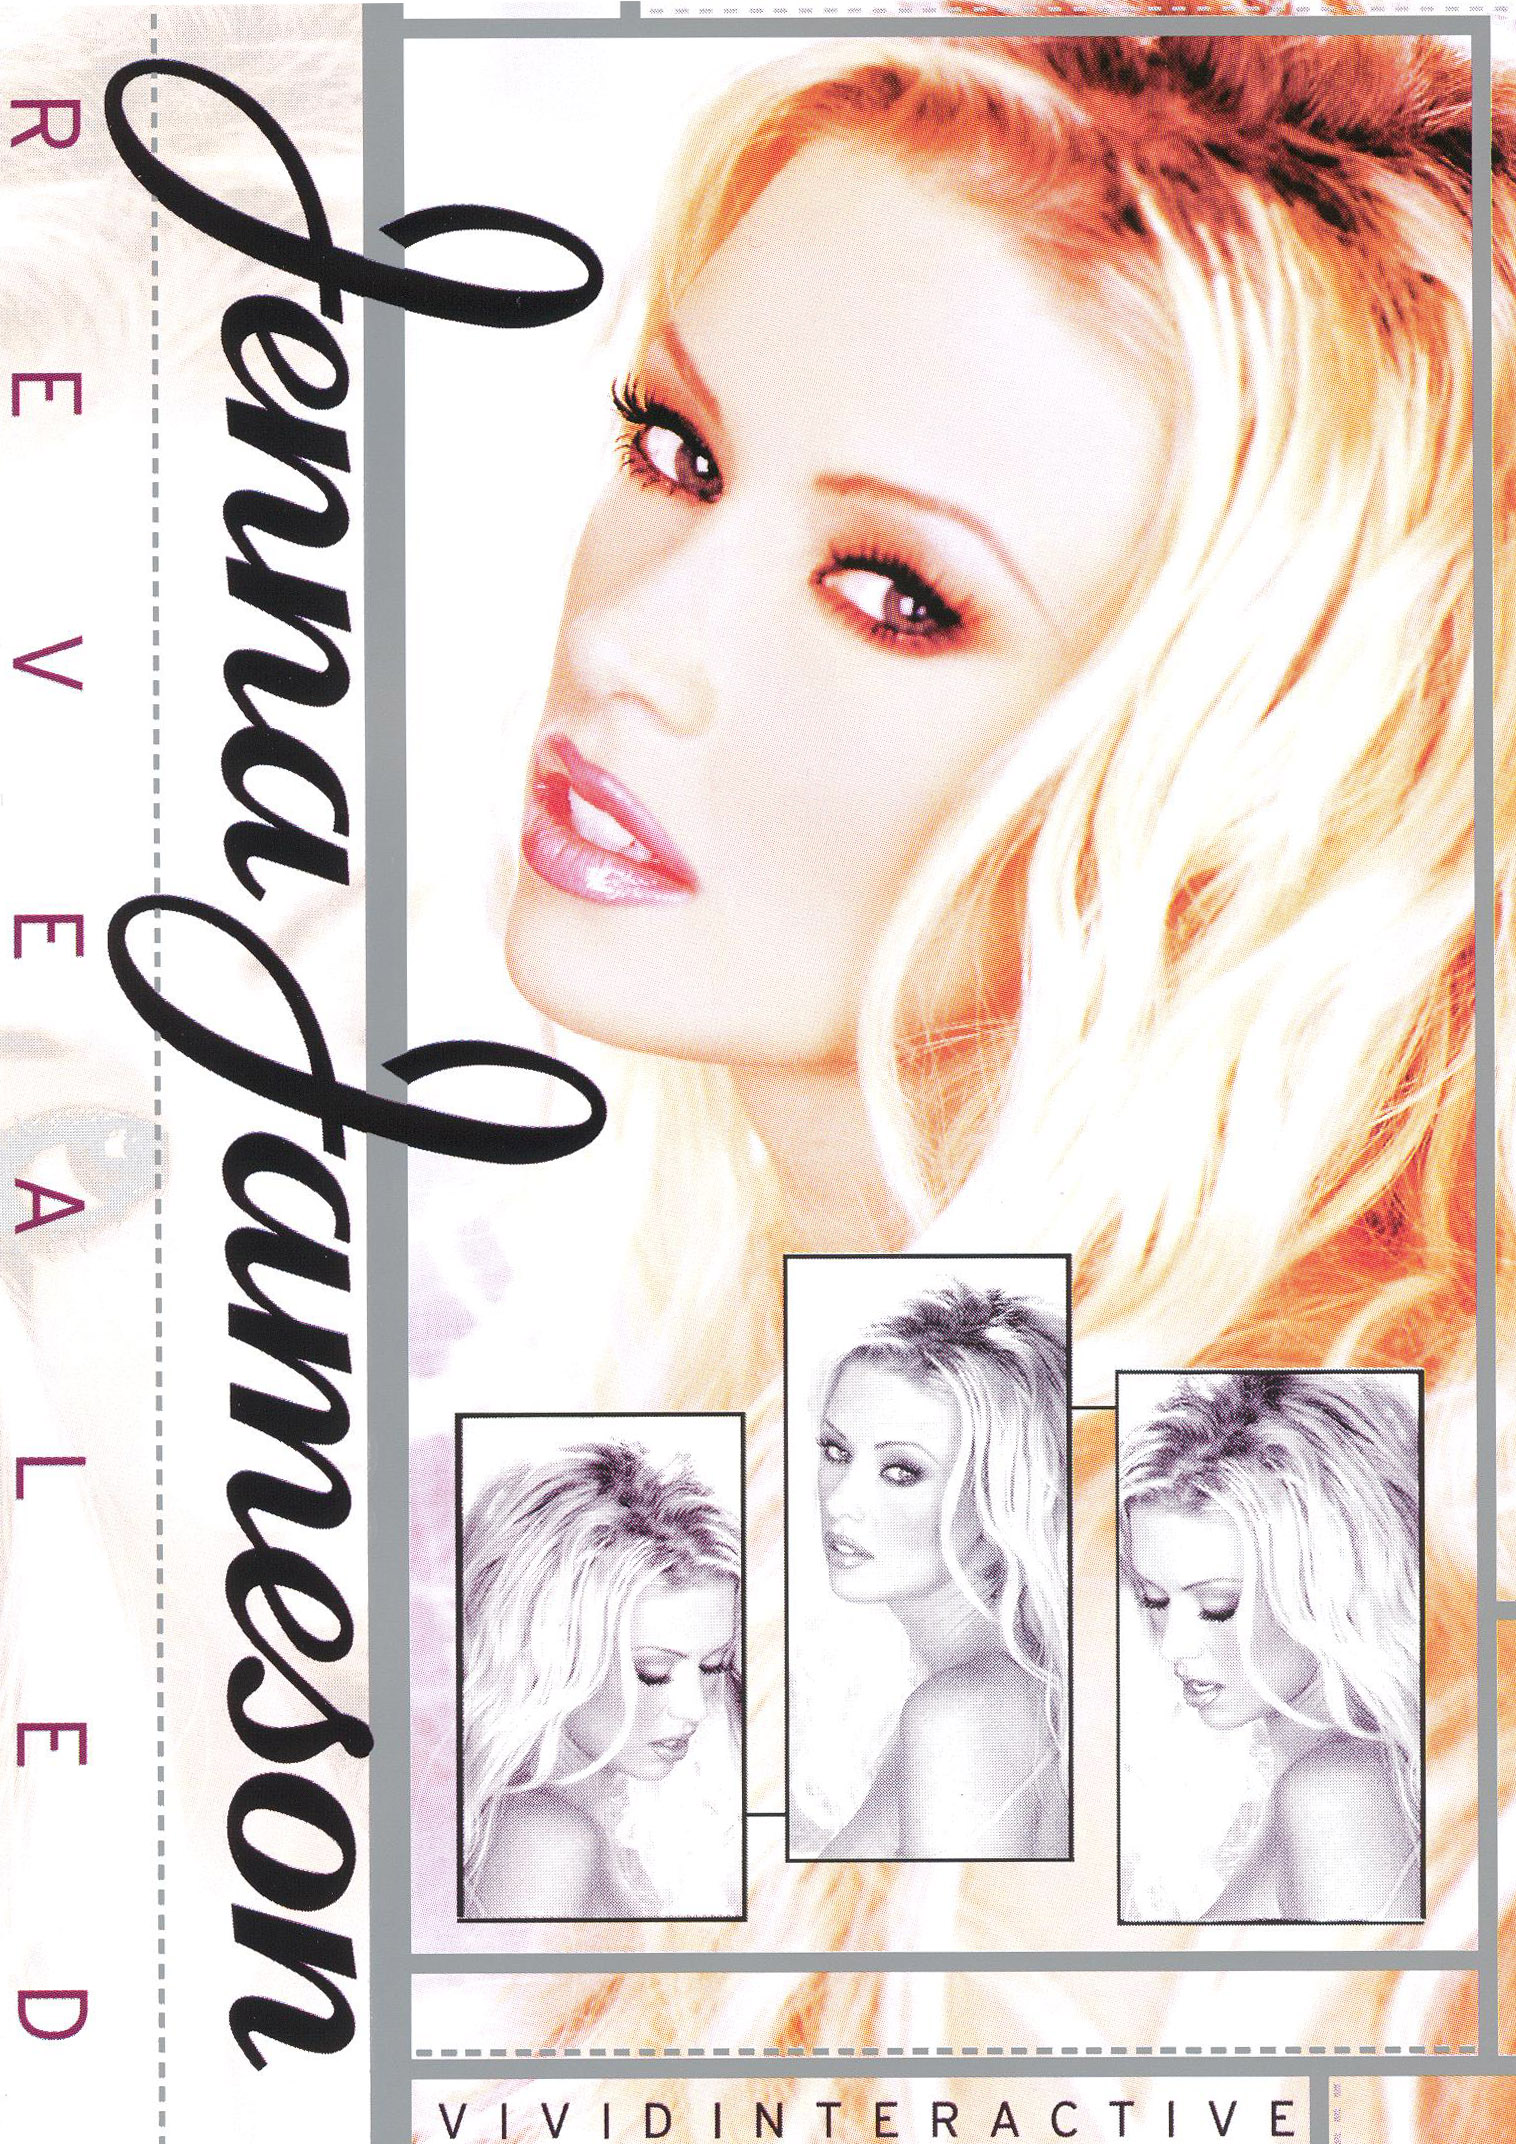 Jenna Jameson: Revealed